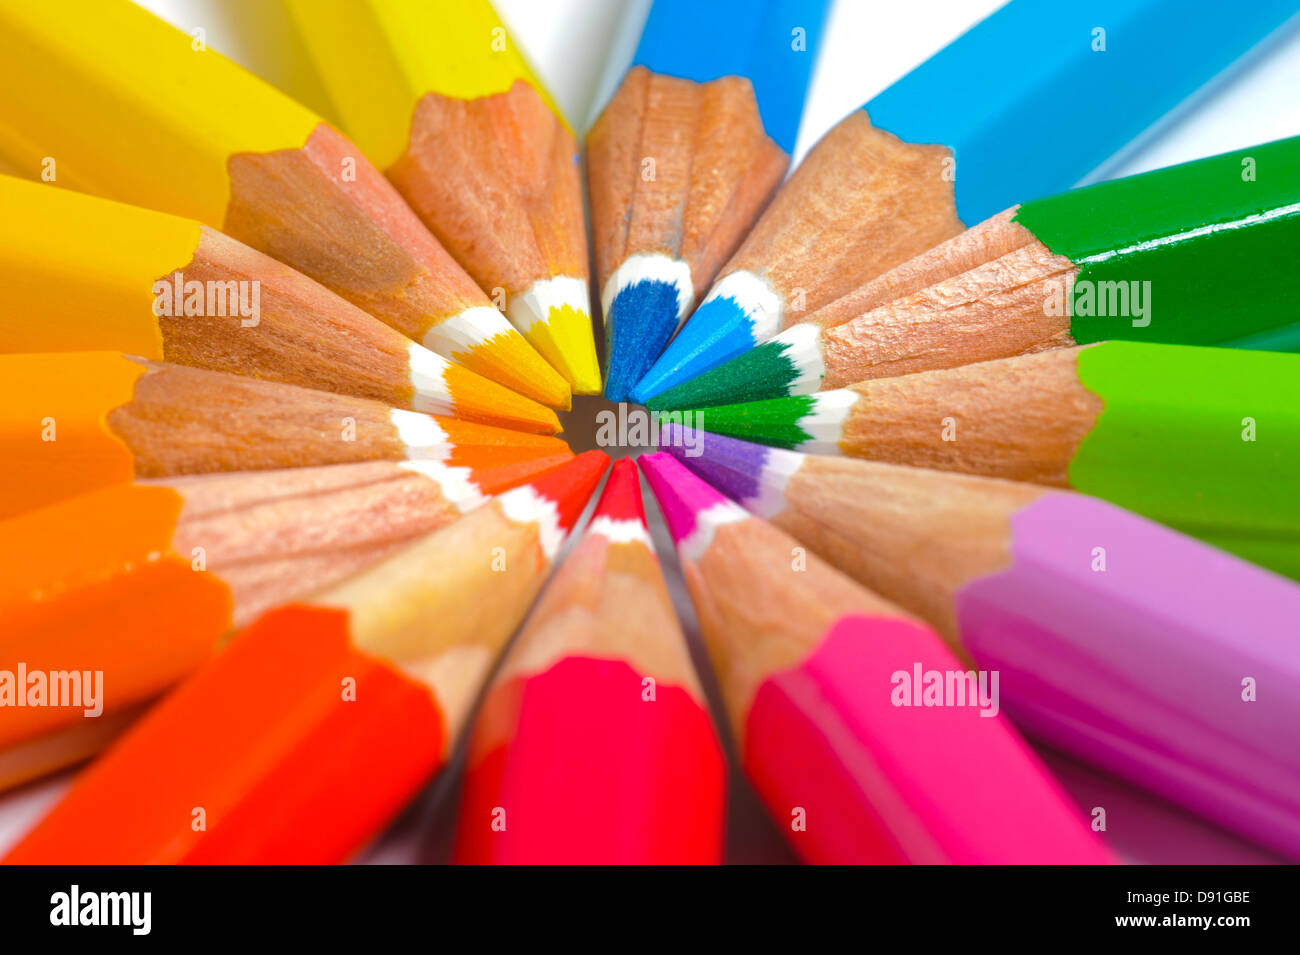 colored pencil in circle - Stock Image